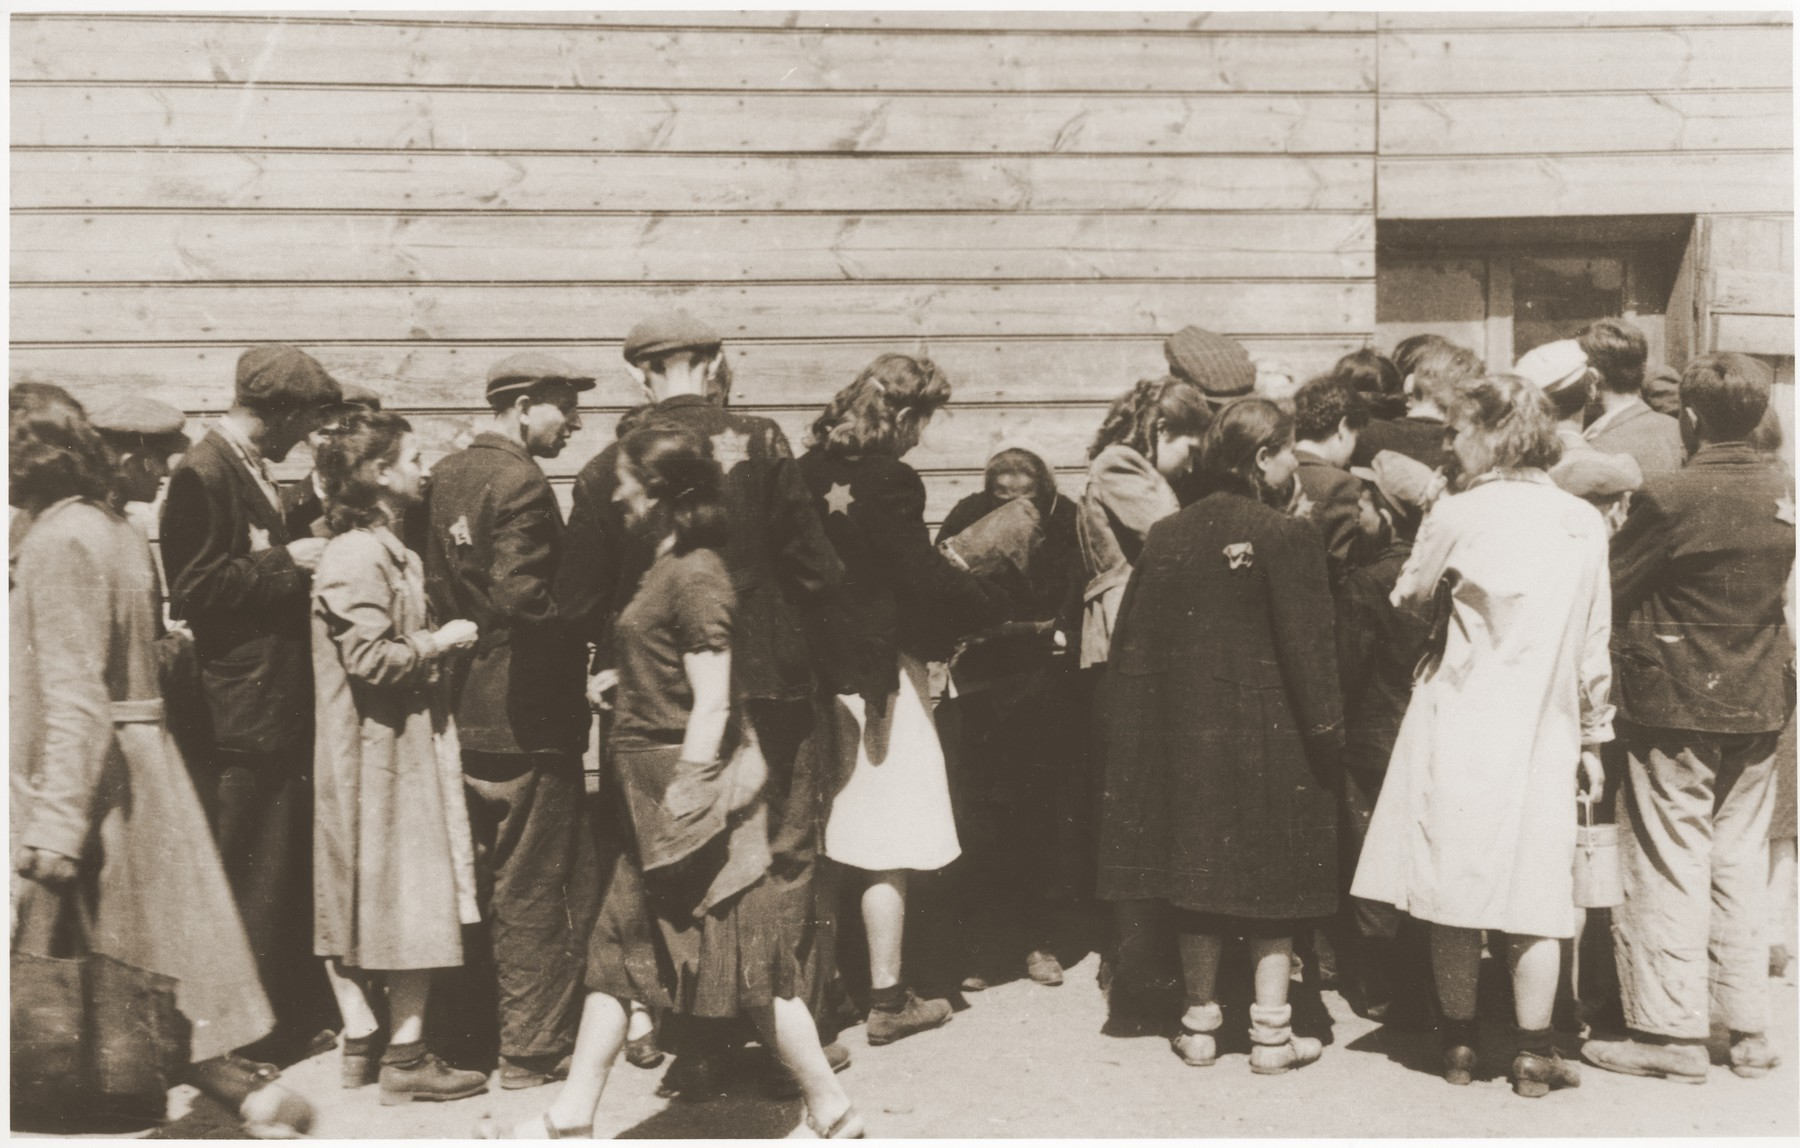 Jews wait in line [at a soup kitchen] in the Lodz ghetto.